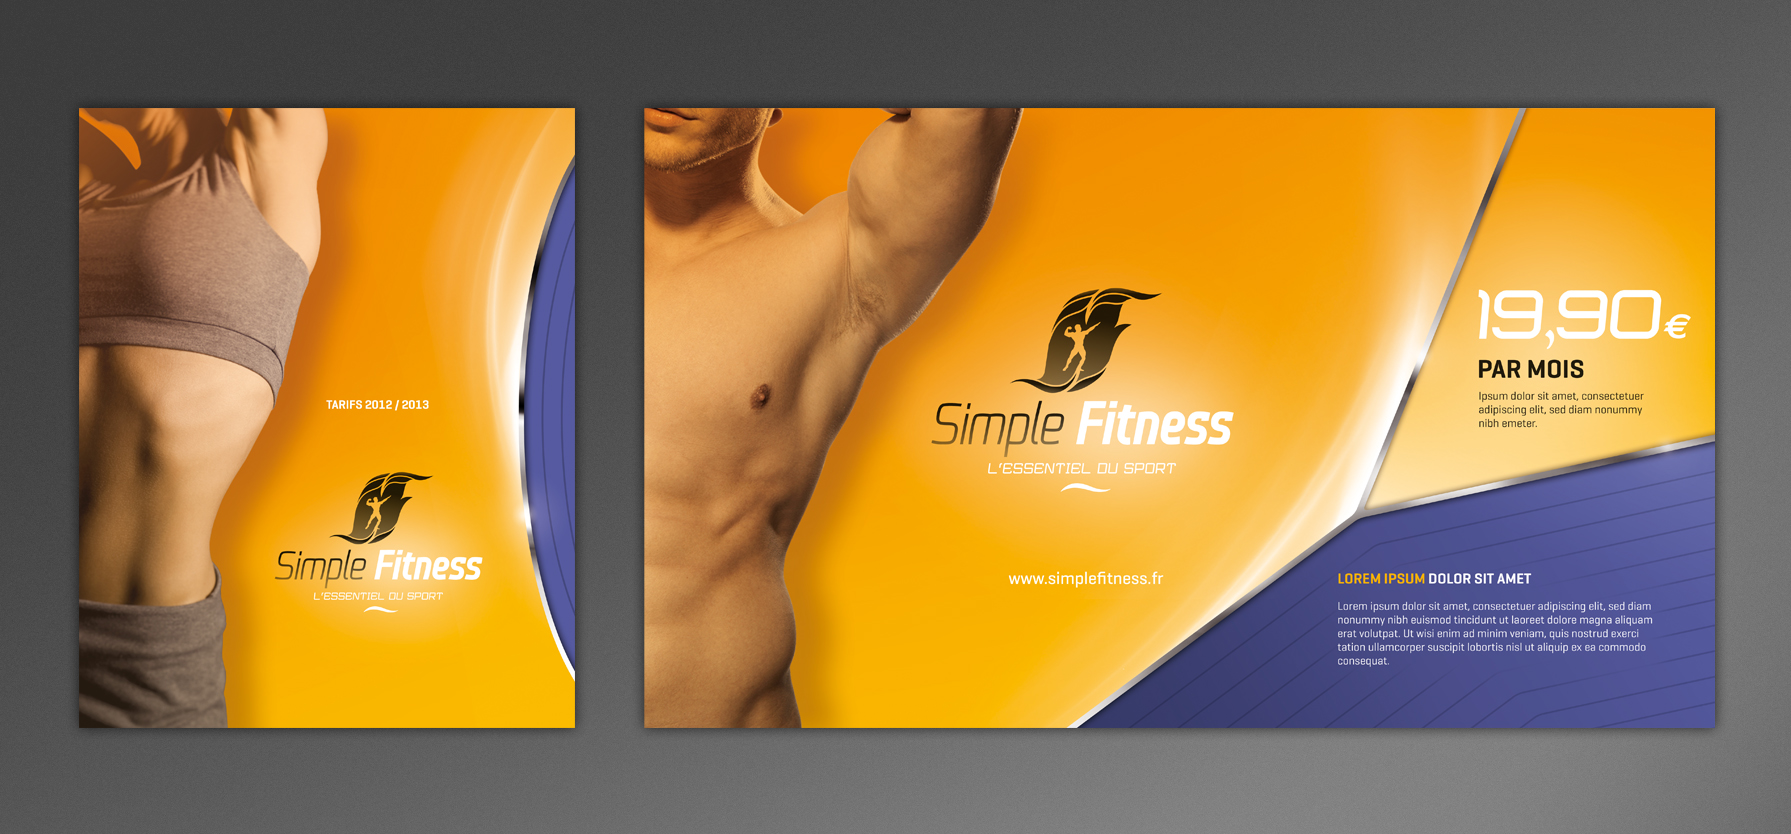 simple_fitness_identite_visuelle-04